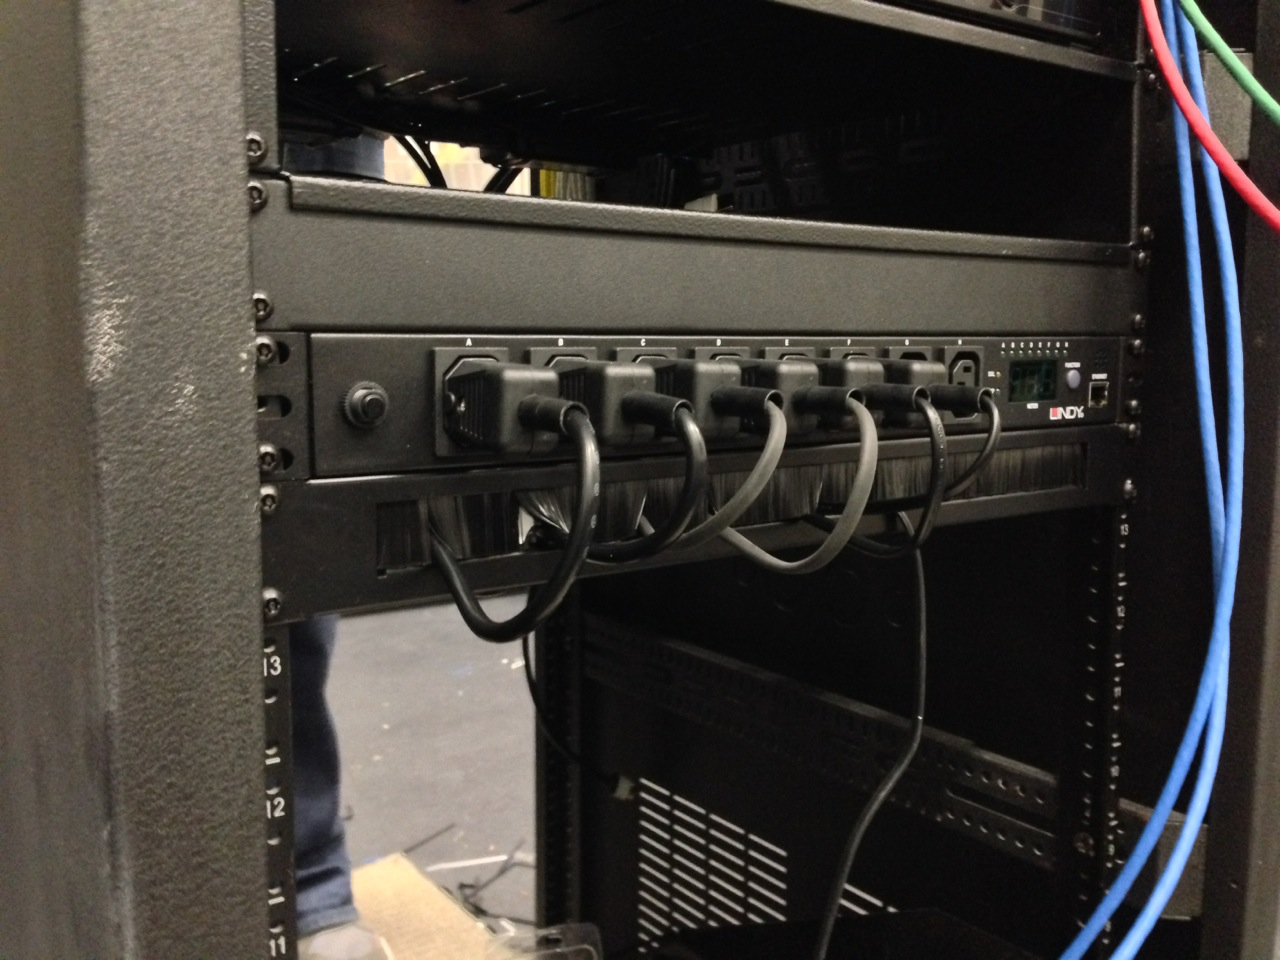 Power cables plugged into PDU's